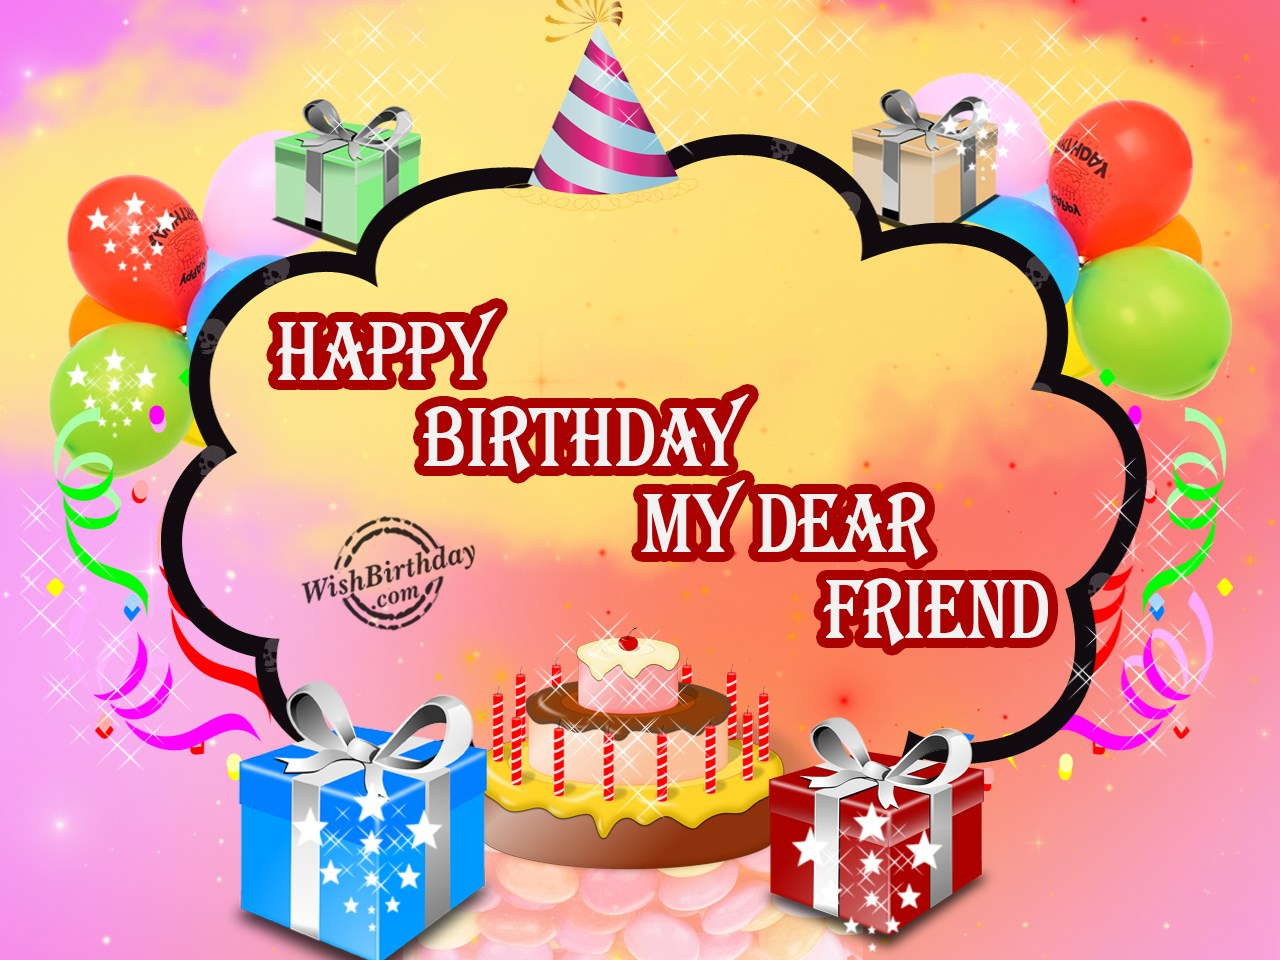 birthday special wallpaper ; 5449757b6148d8d11a3145244088cd7e